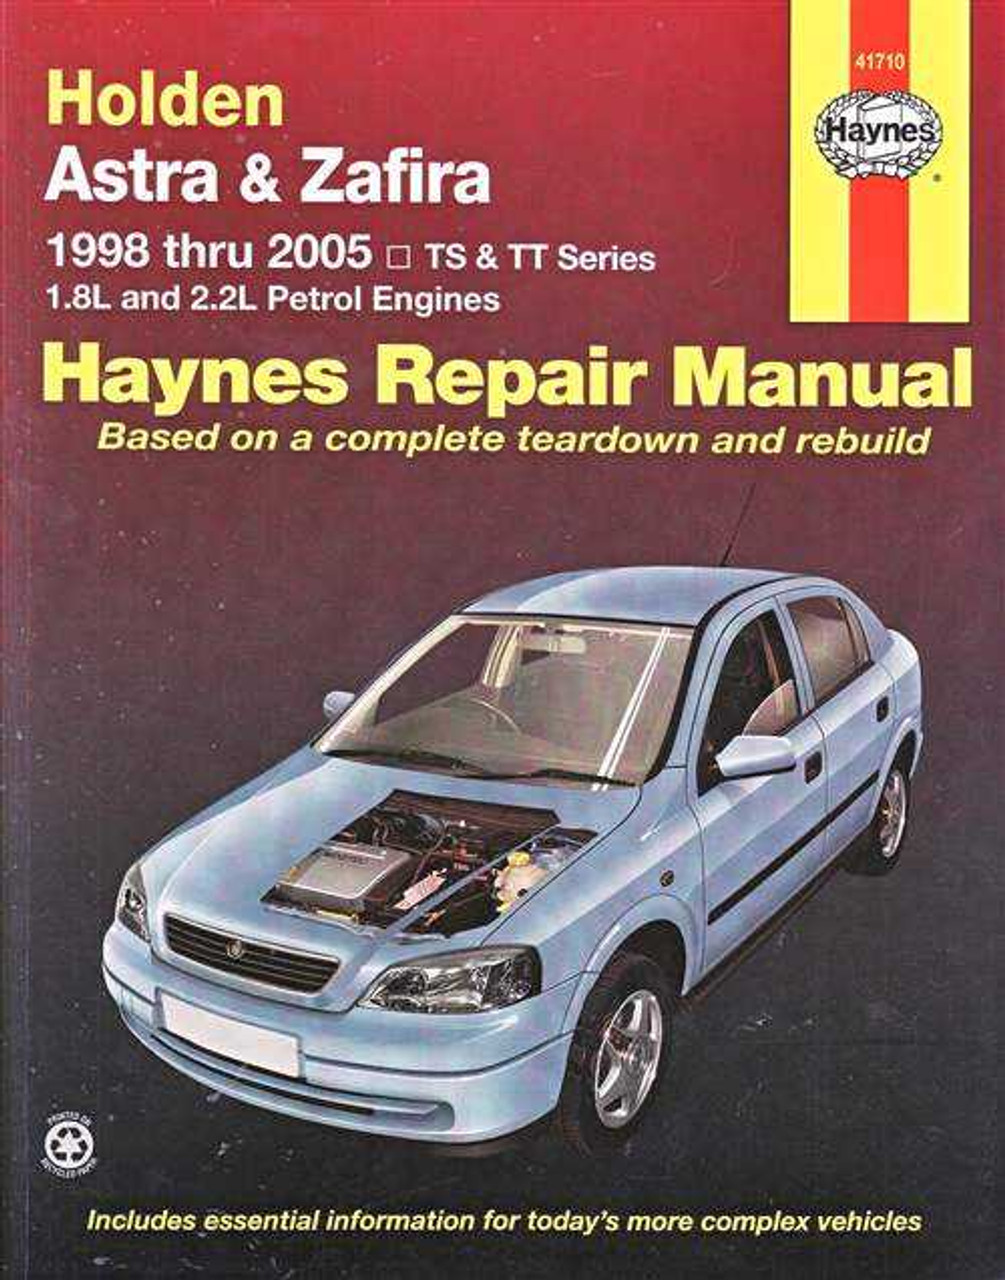 Opel astra g zafira haynes service and repair manual pdf.